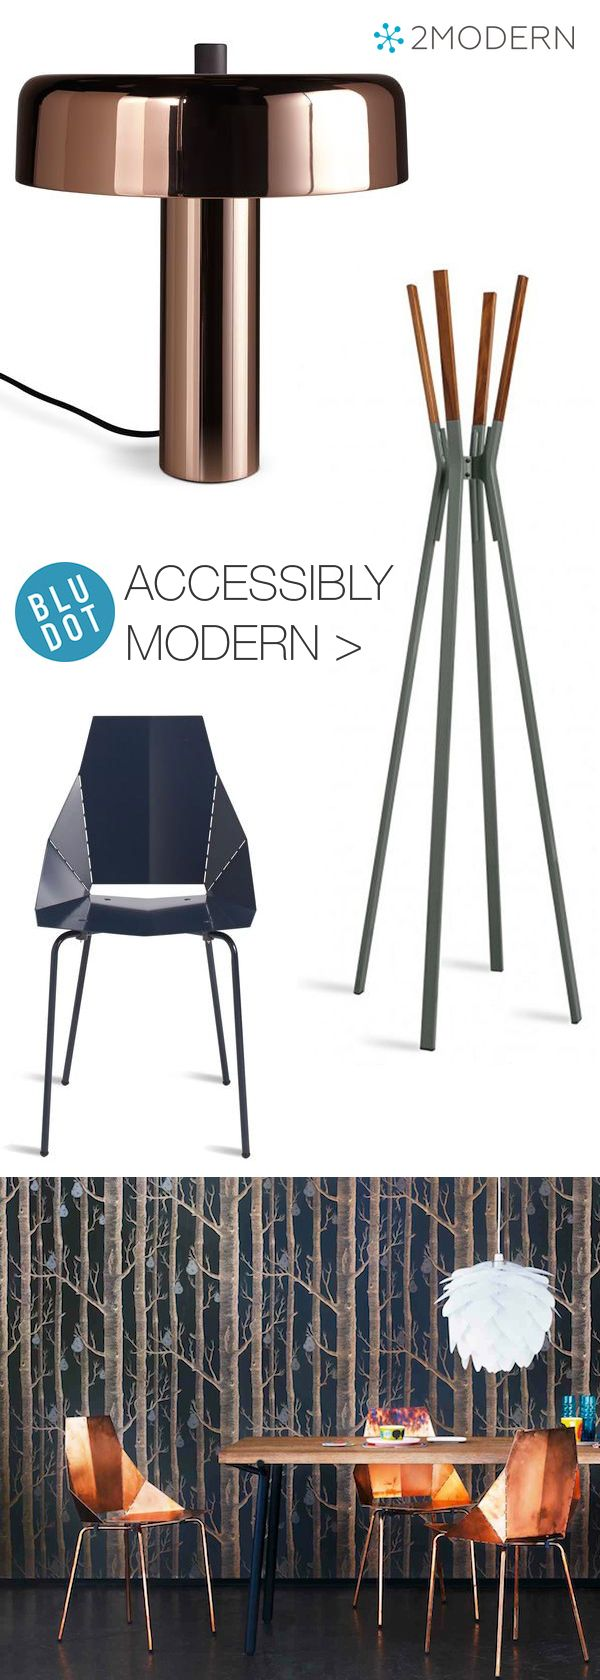 Stylish modern design at accessible prices is a Blu Dot commitment. Our Blu Dot sale offers 20% off on all modern furniture, lighting and decor. Shop the Blu Dot Annual Sale now, through October 30th.